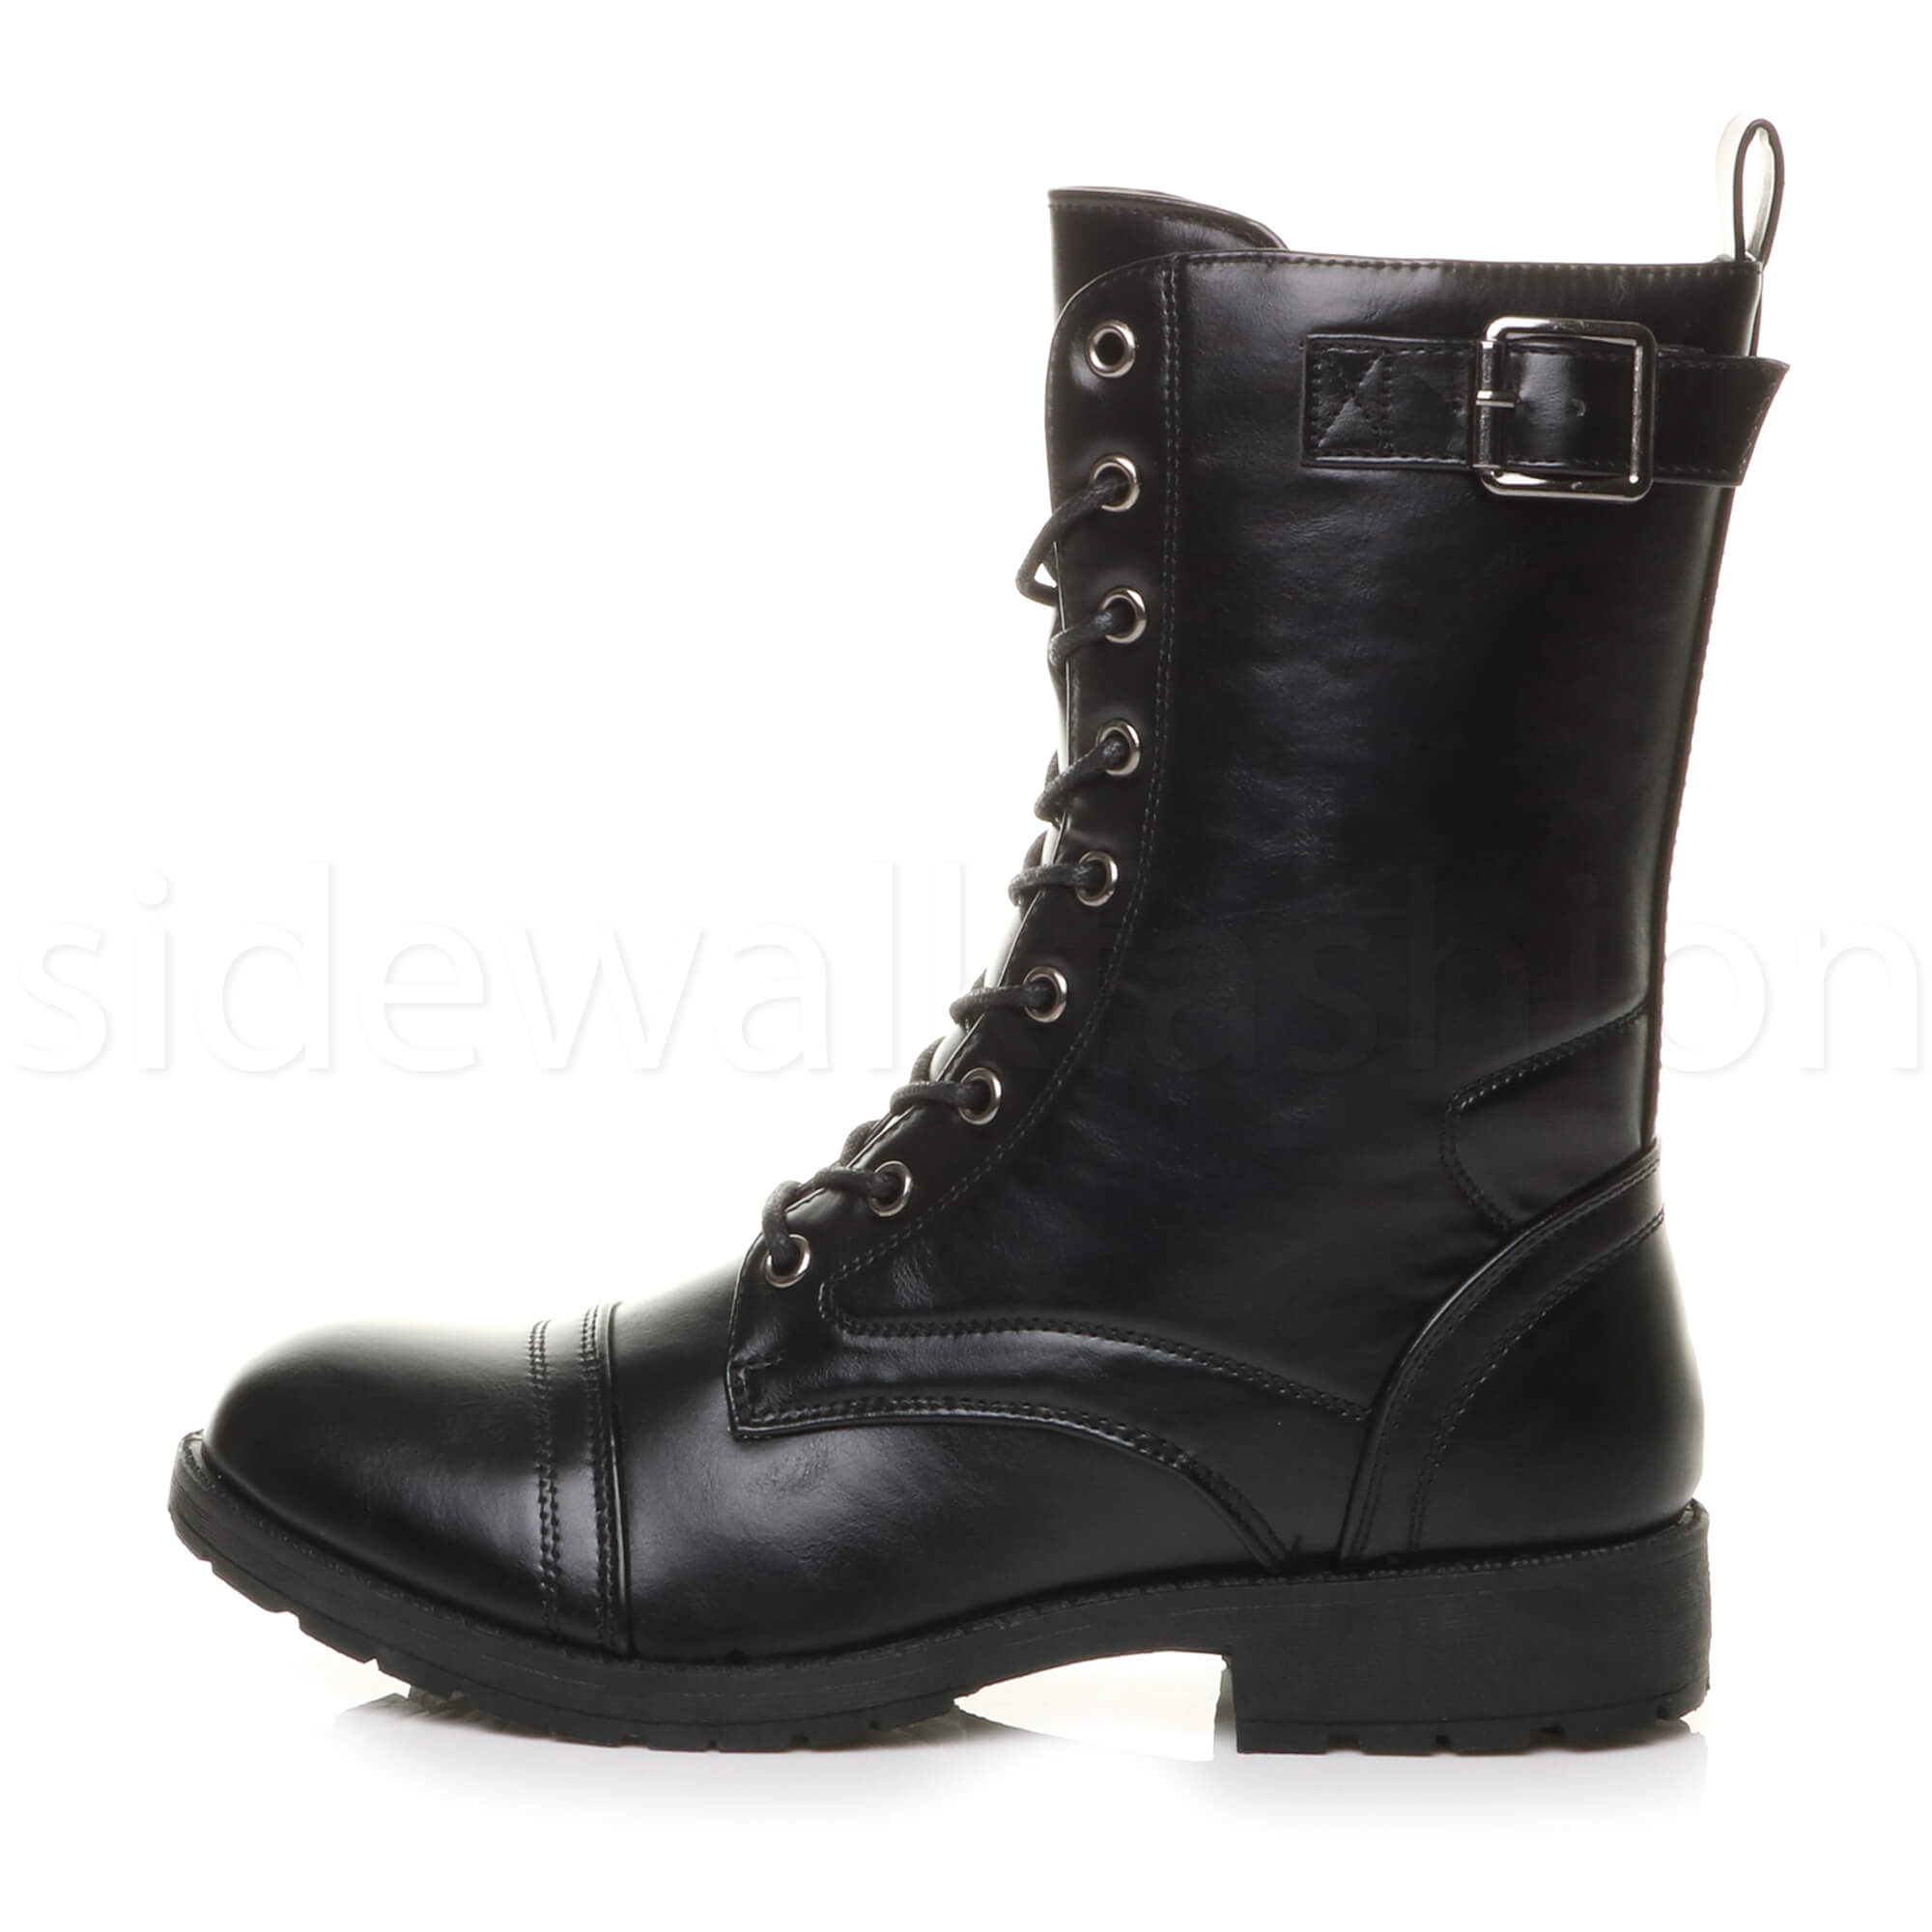 Womens-ladies-low-heel-flat-lace-up-zip-combat-biker-military-ankle-boots-size thumbnail 11